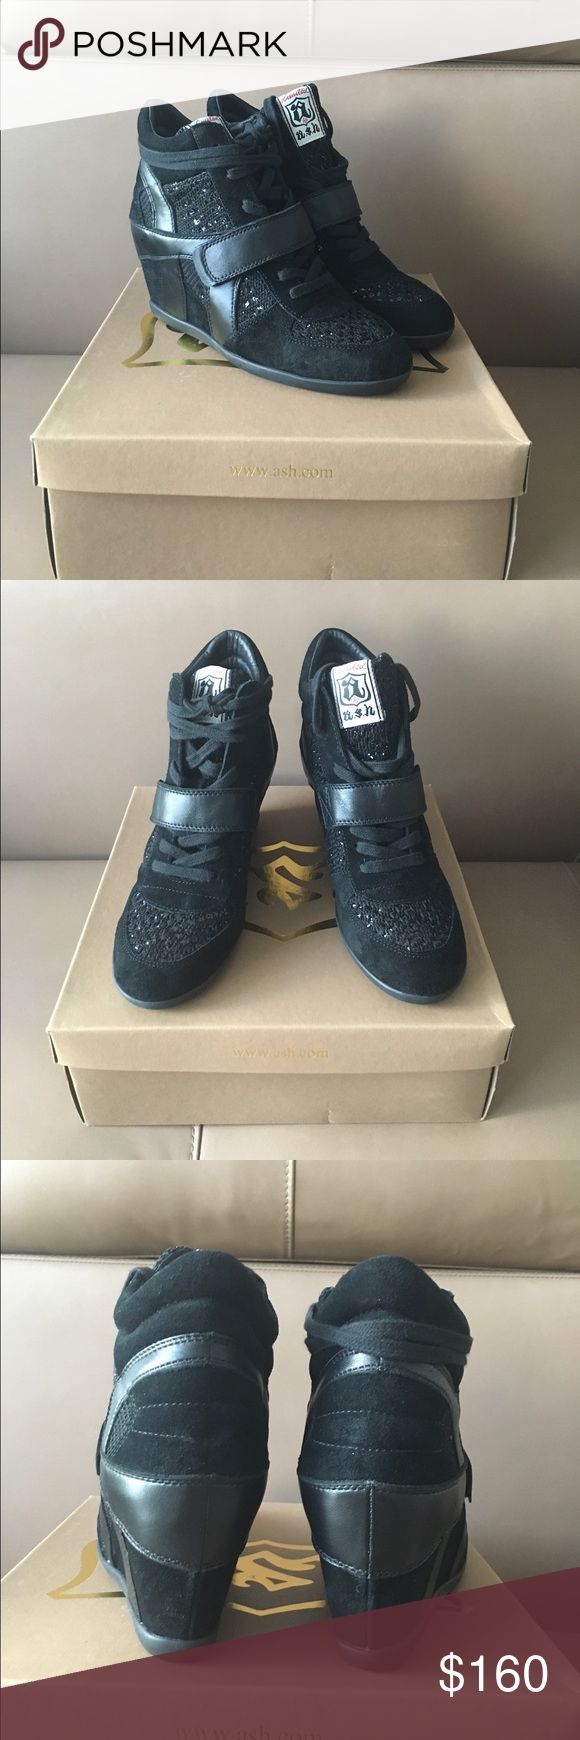 Ash $235 Black Suede Bowie Wedge Sneakers 8.5-9 ! New , authentic Ash Bowie Wedge Sneakers in size 39 . Fits 8.5-9 US . Style comes in whole sizes only . Sorry , no trading -:( . Thanks ! Ash Shoes Wedges